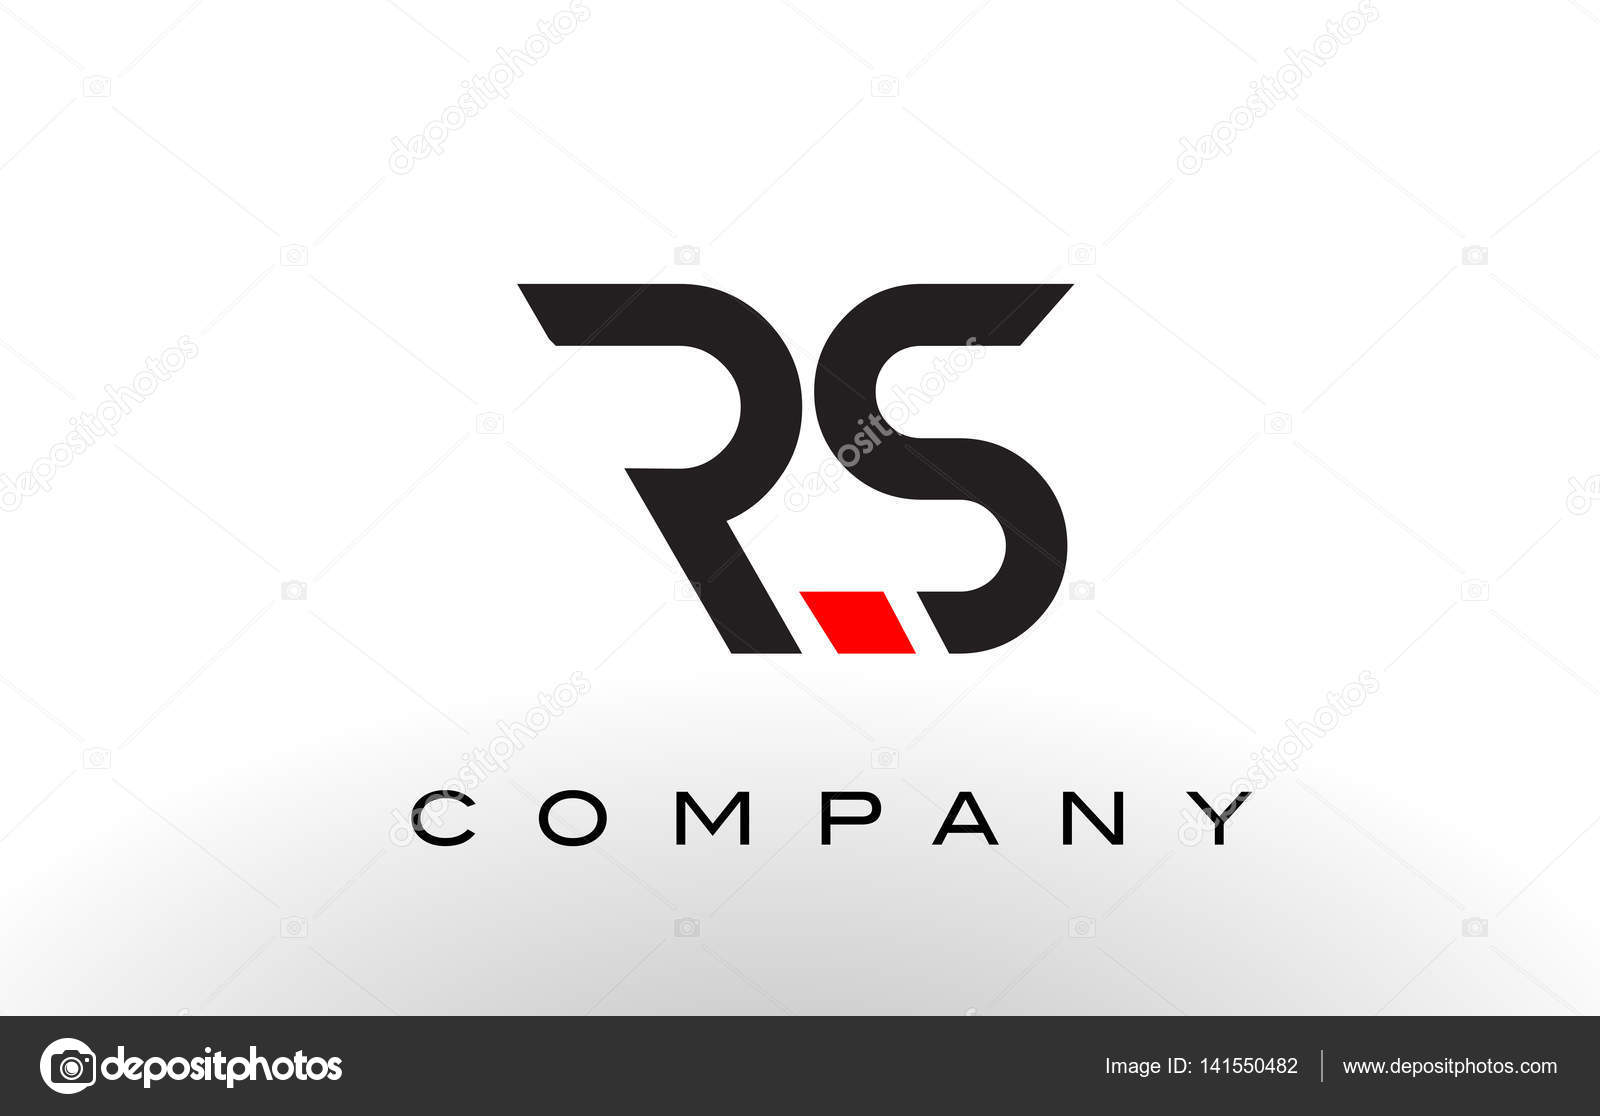 Rs logo letter design vector stock vector twindesigner 141550482 rs logo letter design vector with red and black colors vector by twindesigner buycottarizona Image collections